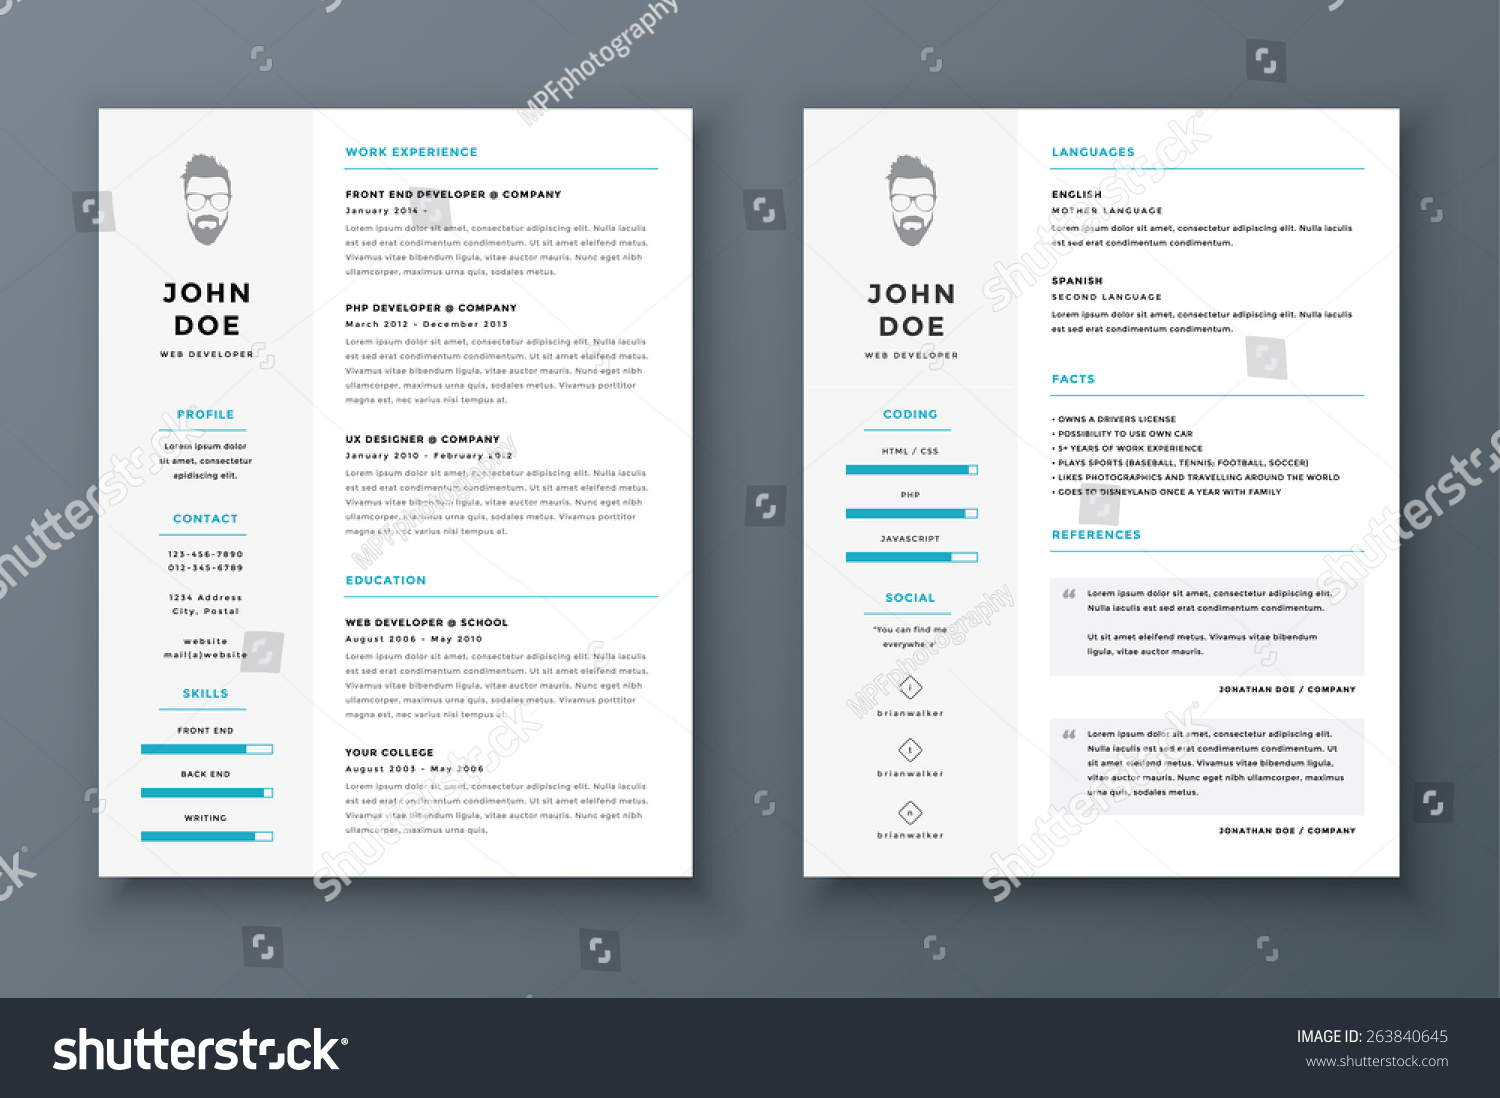 resume cv vector template awesome job stock vector 263840645